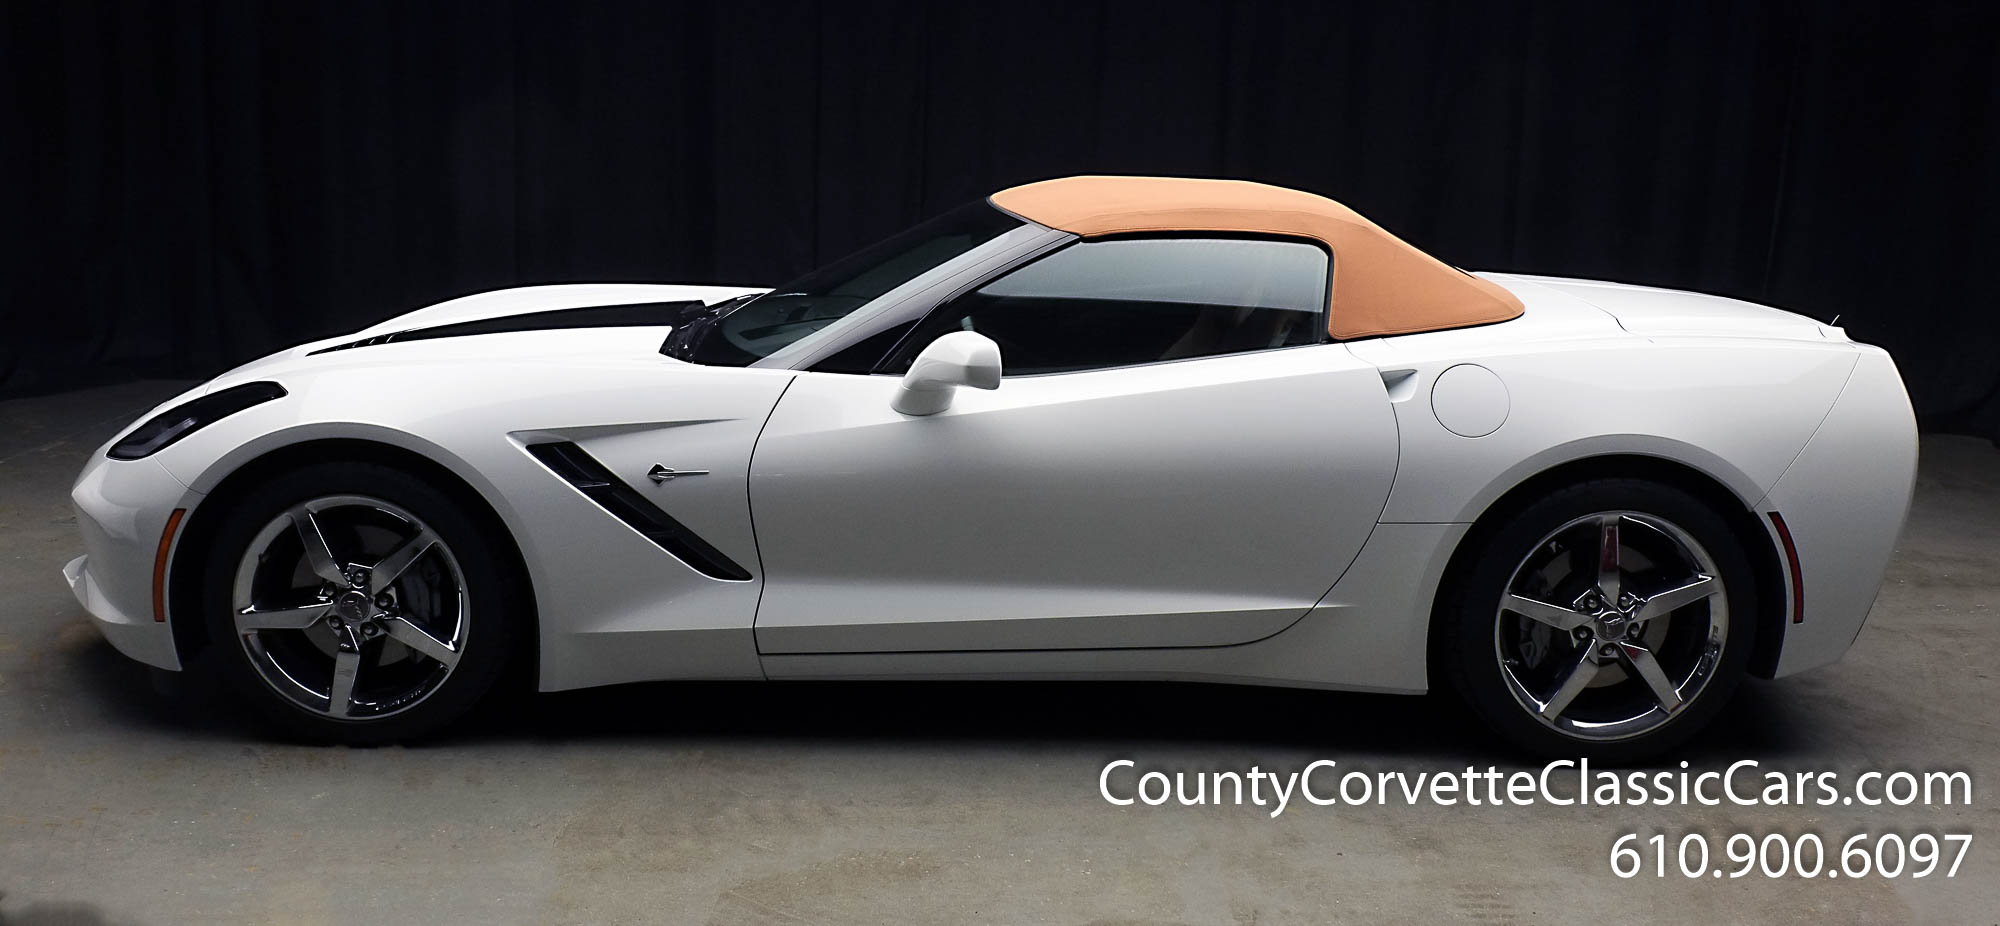 2014-Corvette-Stingray-Convertible-7.jpg